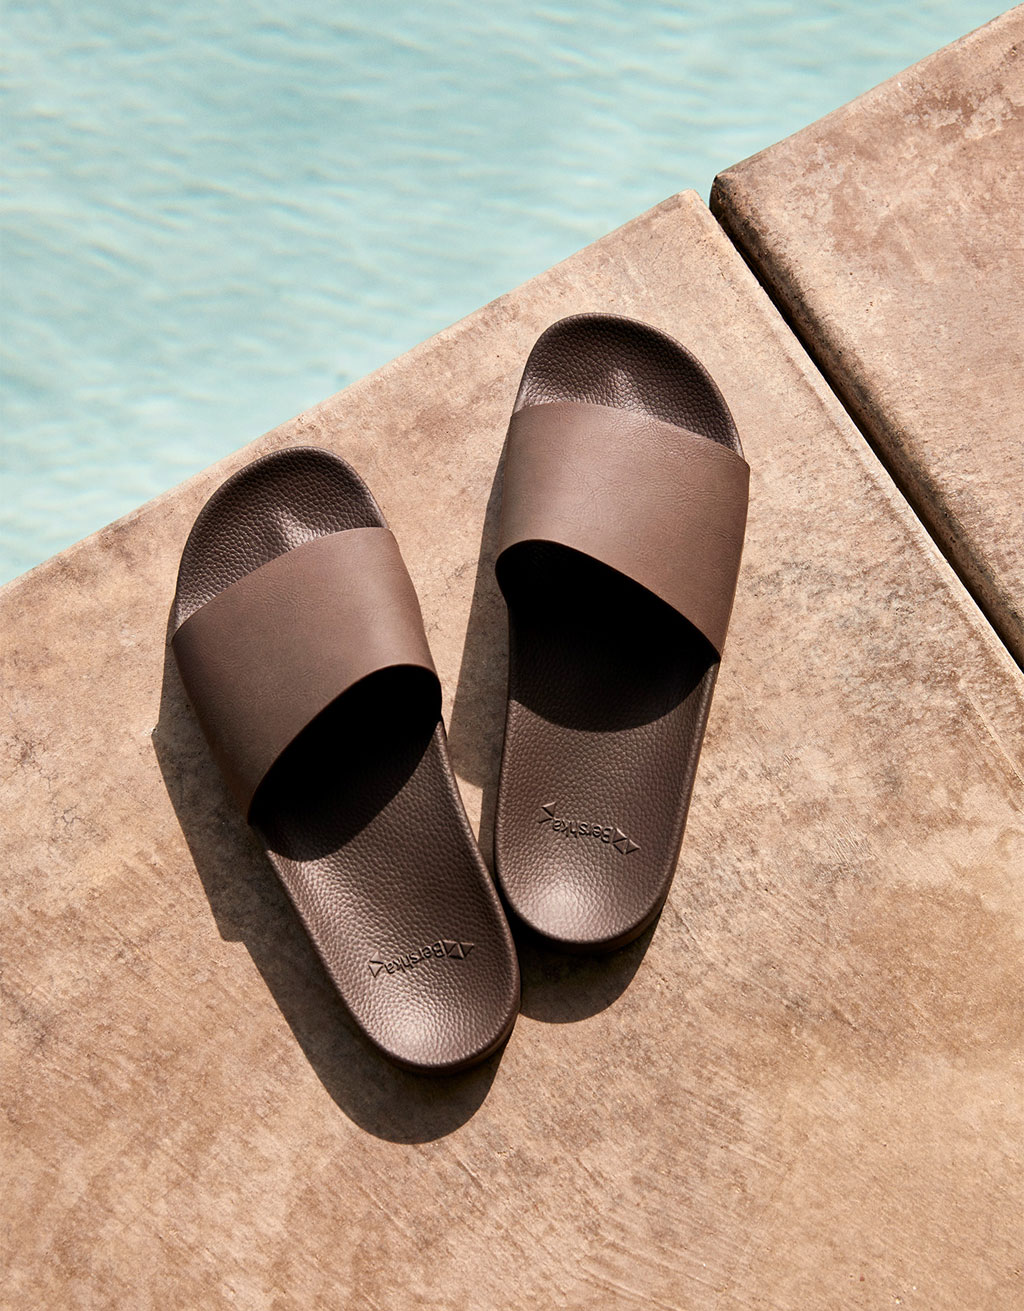 Men's brown slides